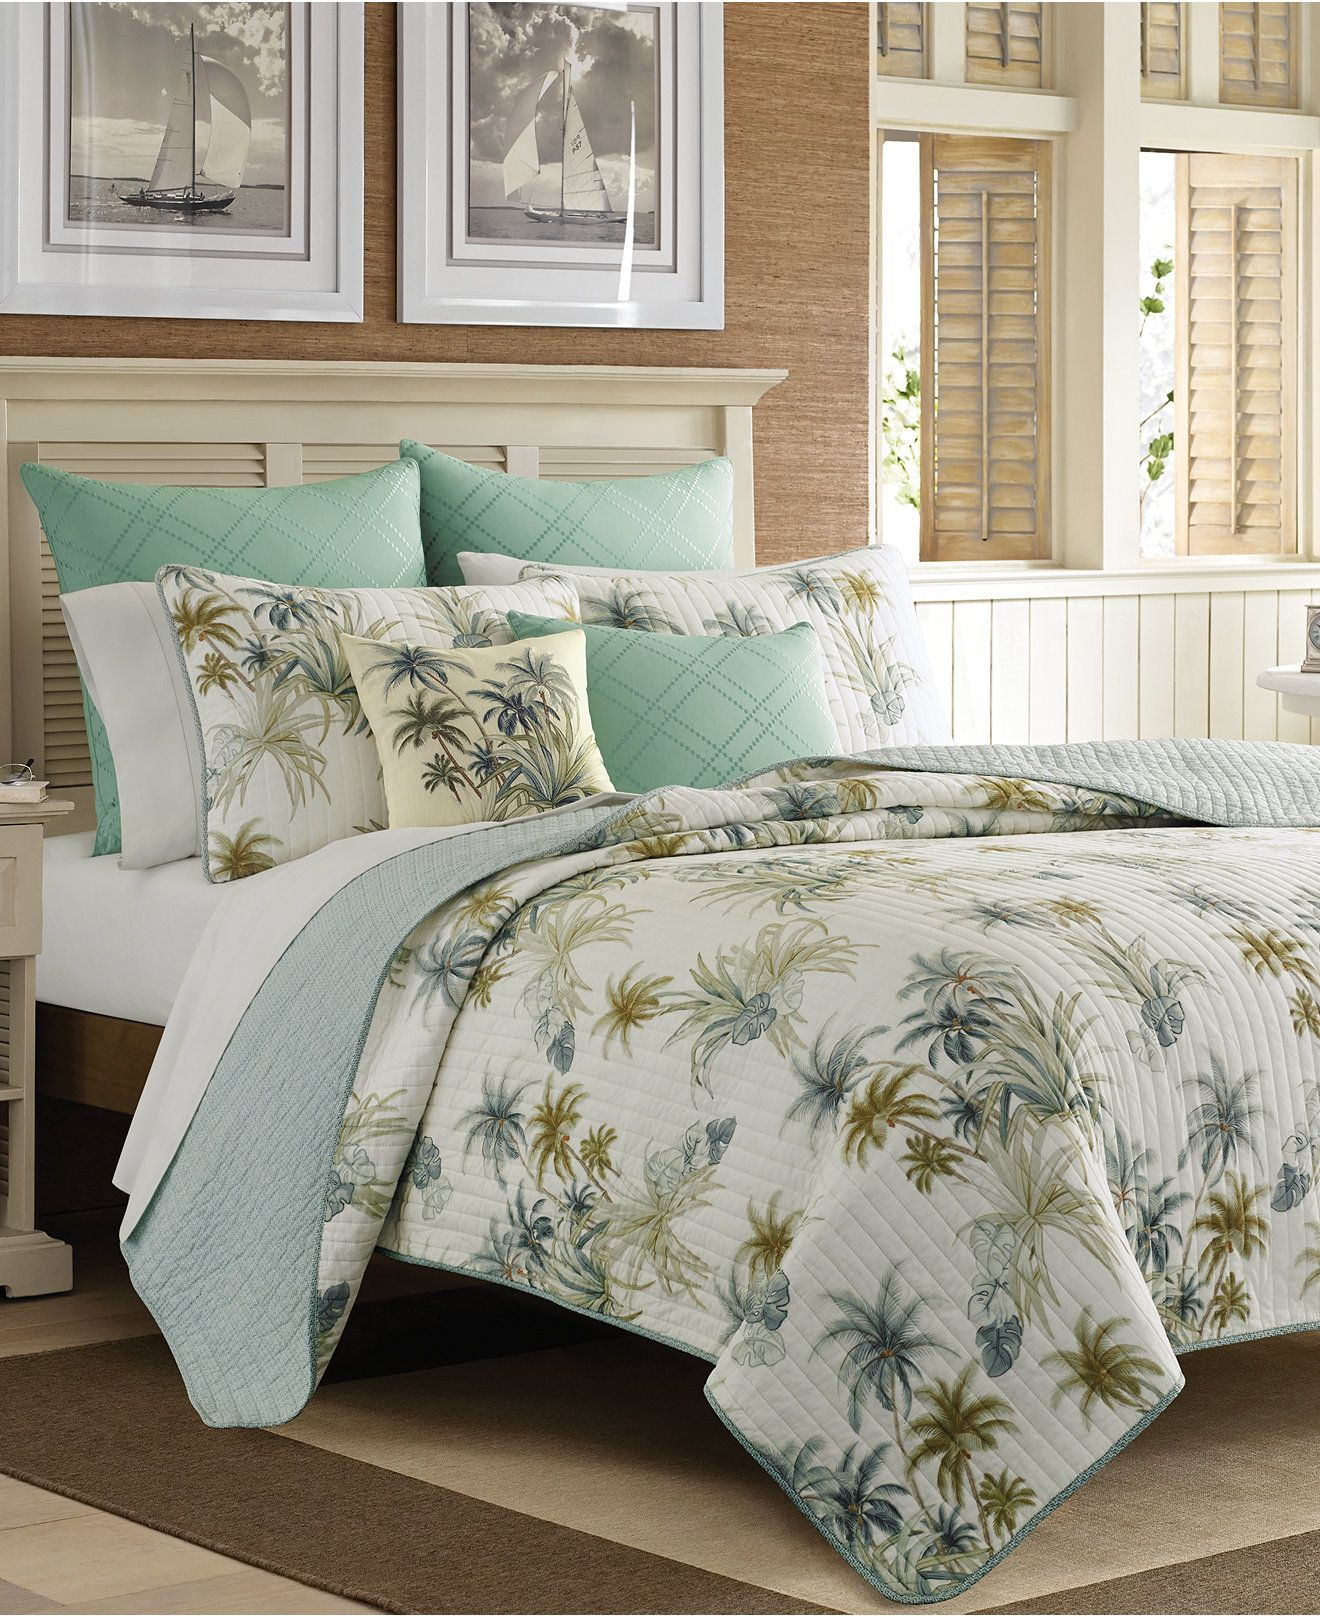 Tommy Bahama Home Serenity Palms Quilt Collection Reviews Quilts Bedspreads Bed Bath Macy S Tommy Bahama Quilts Tommy Bahama Bedding Tommy Bahama Home